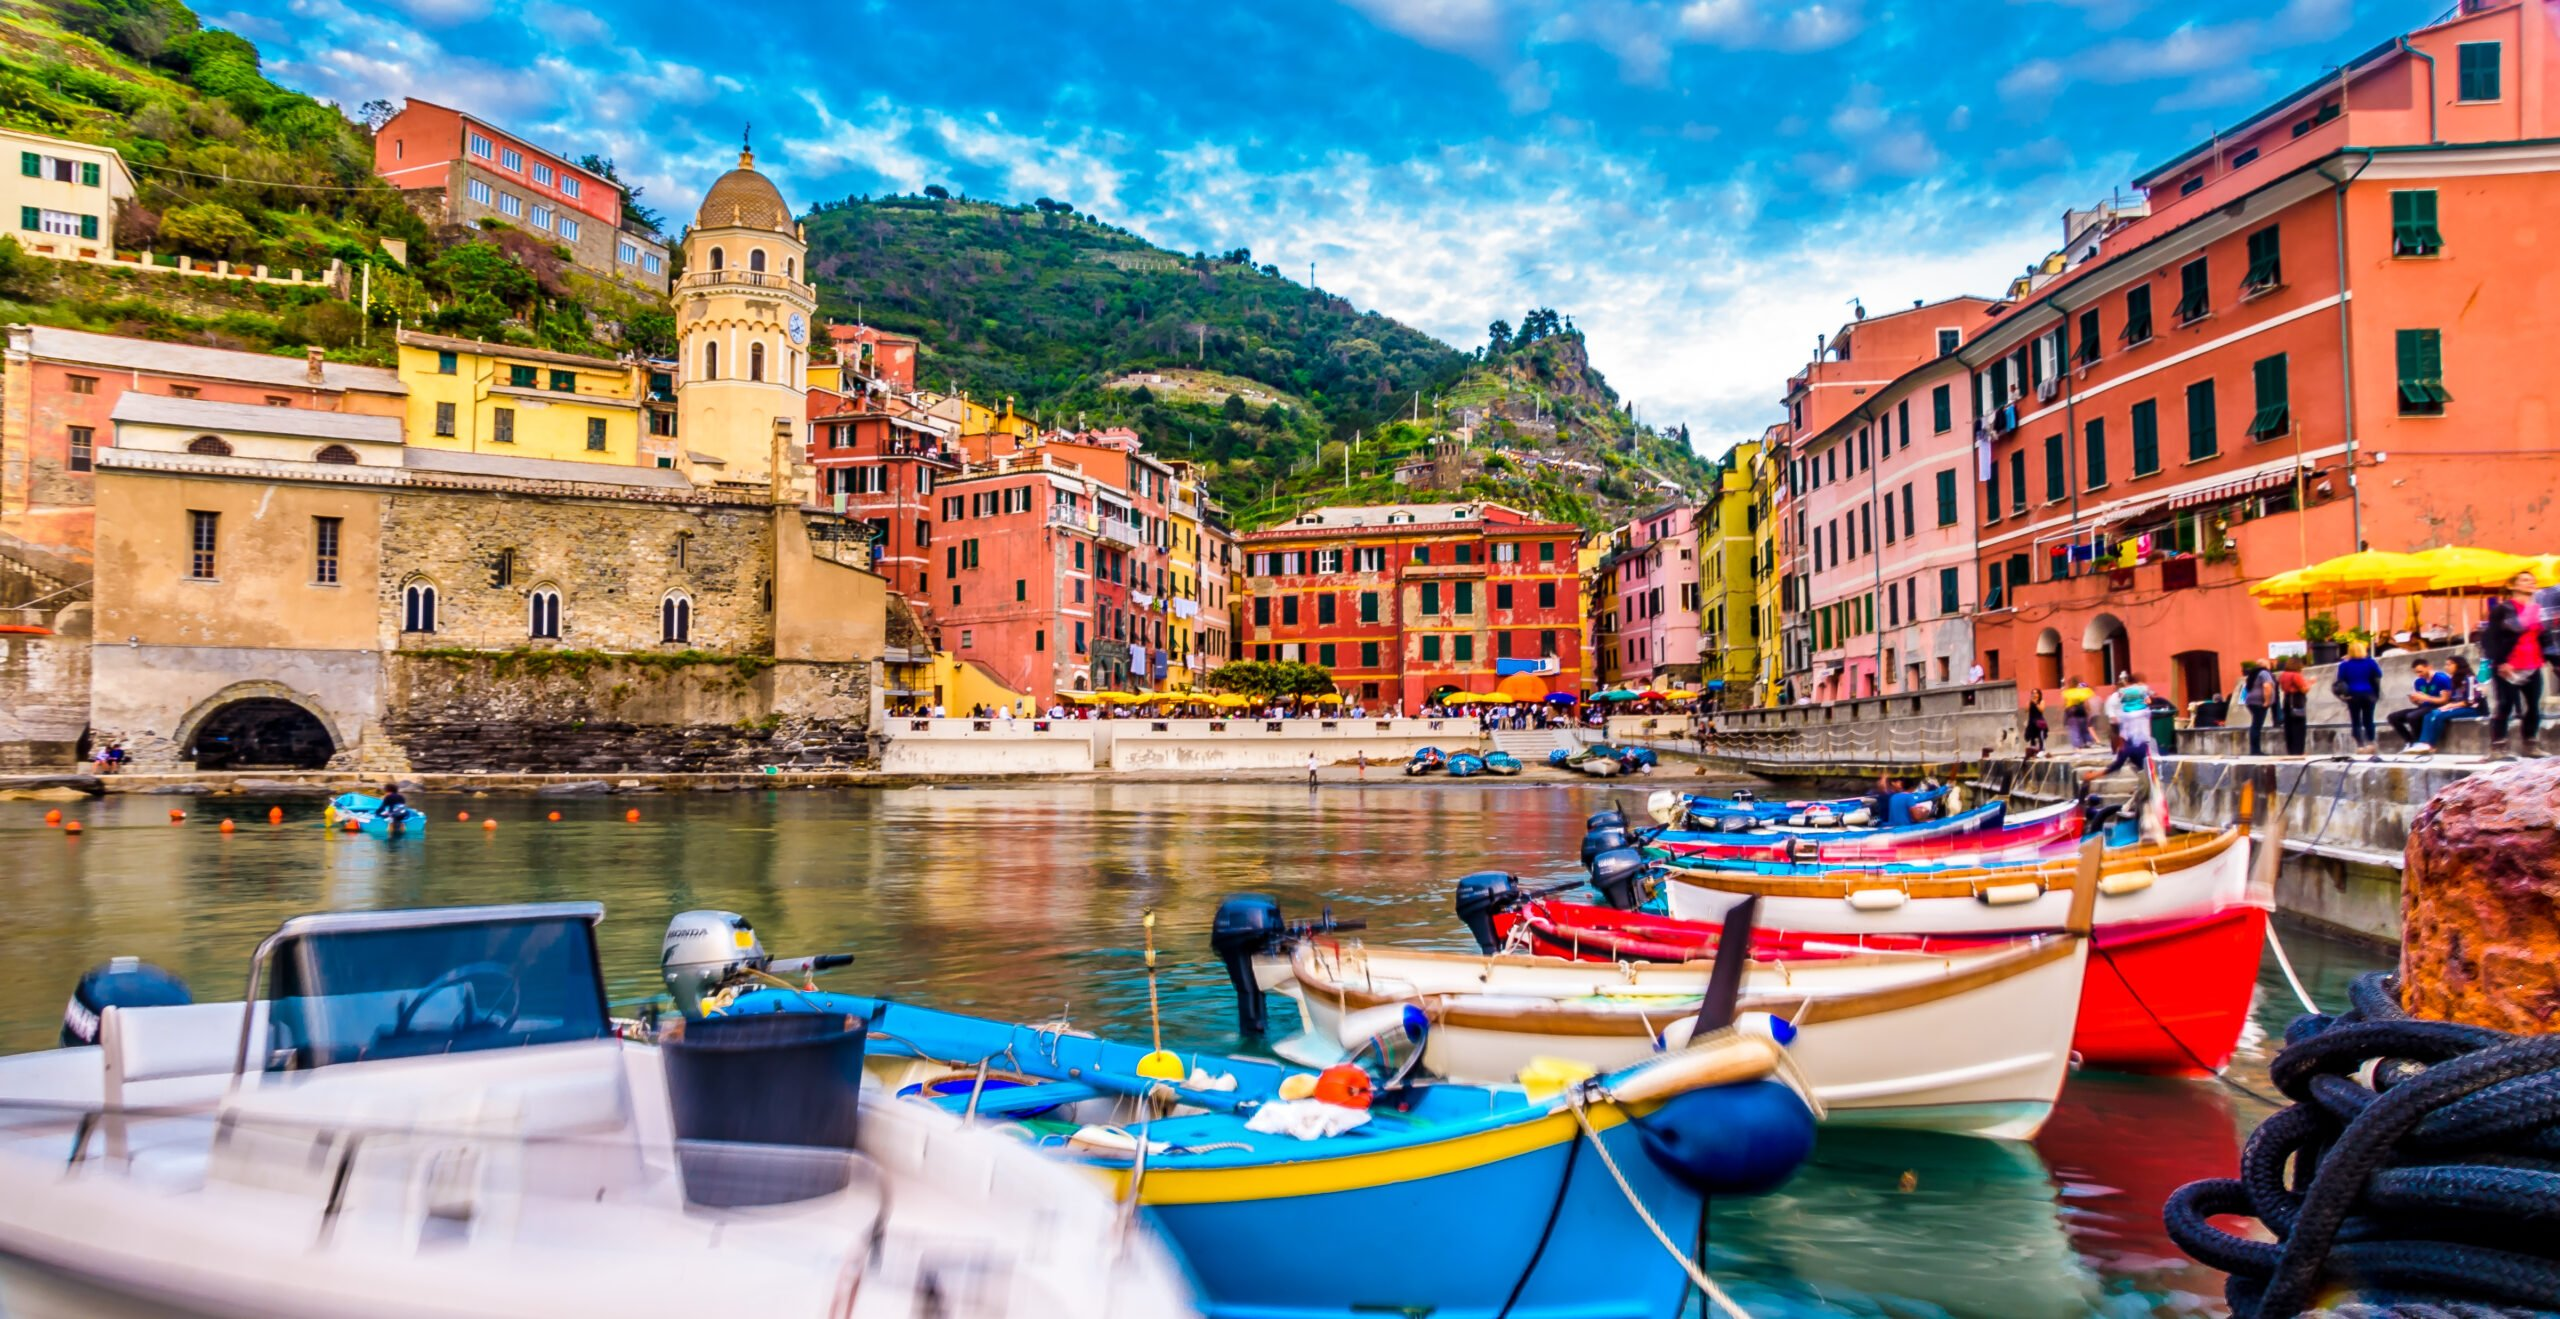 Hike Cinque Terre On Our Alternative Florence & Tuscany 6 Day Tour Package